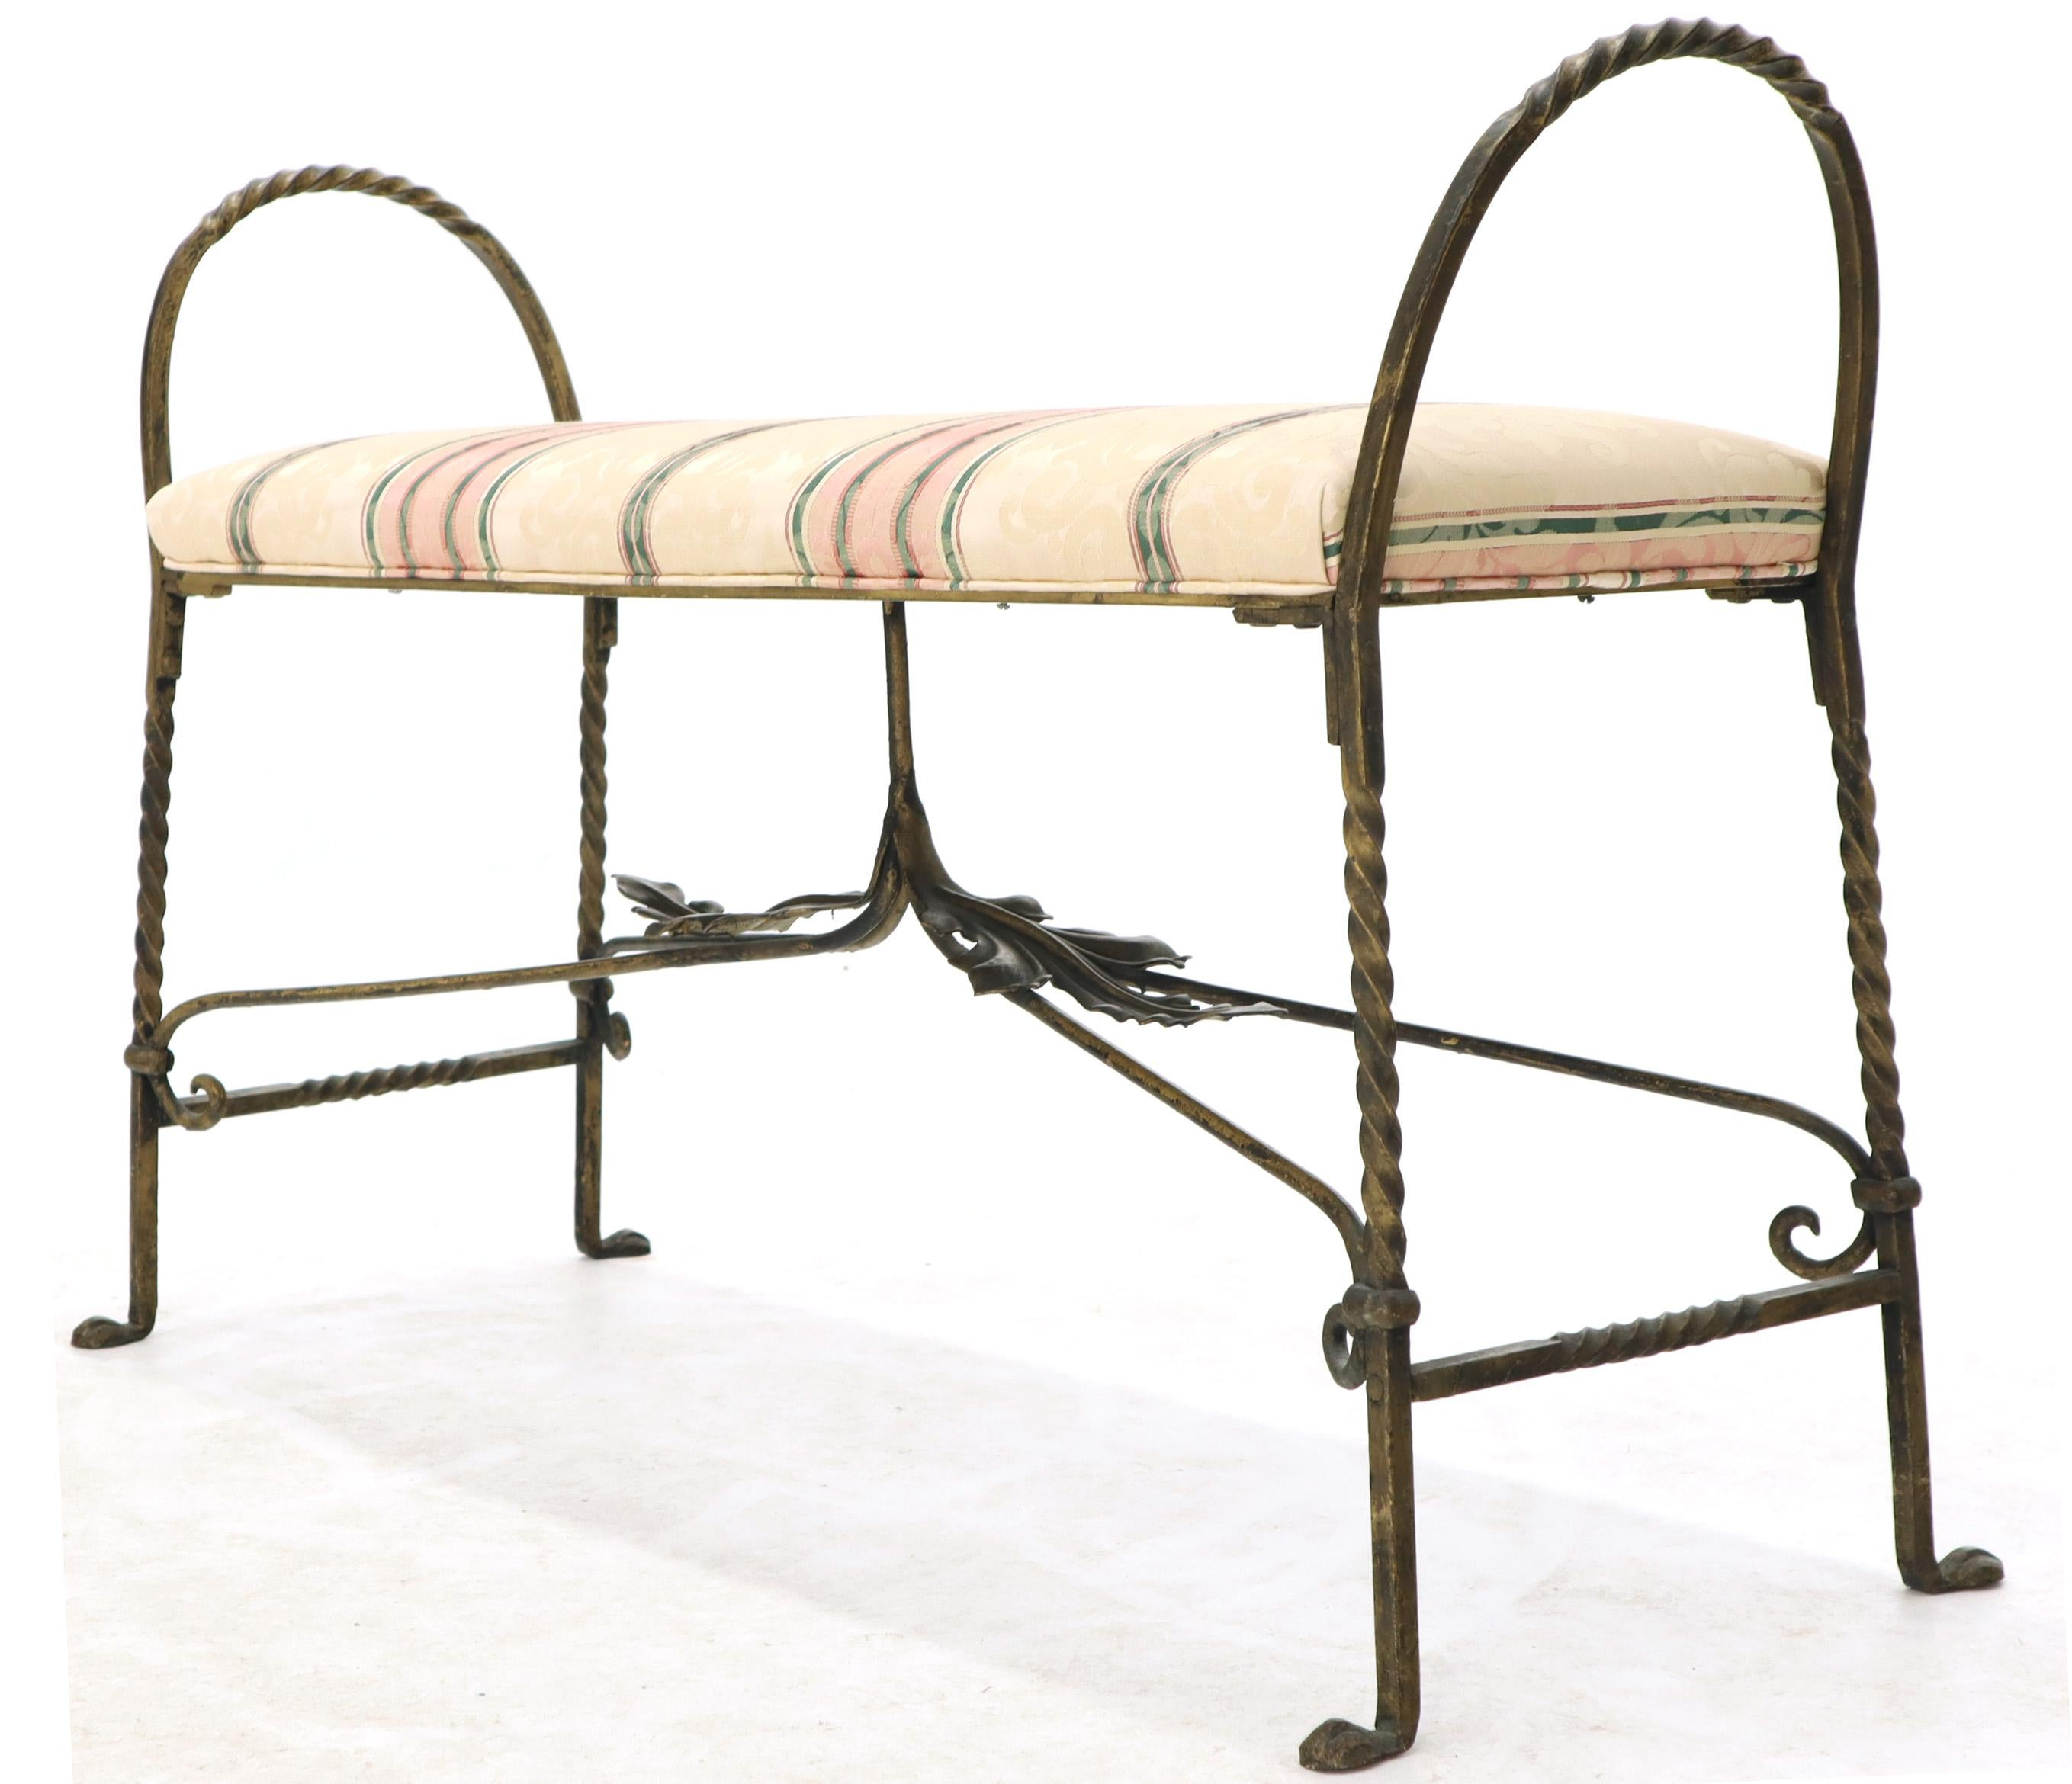 Admirable Figural Twisted Wrought Iron Window Bench Grape Leaf Motive Ibusinesslaw Wood Chair Design Ideas Ibusinesslaworg